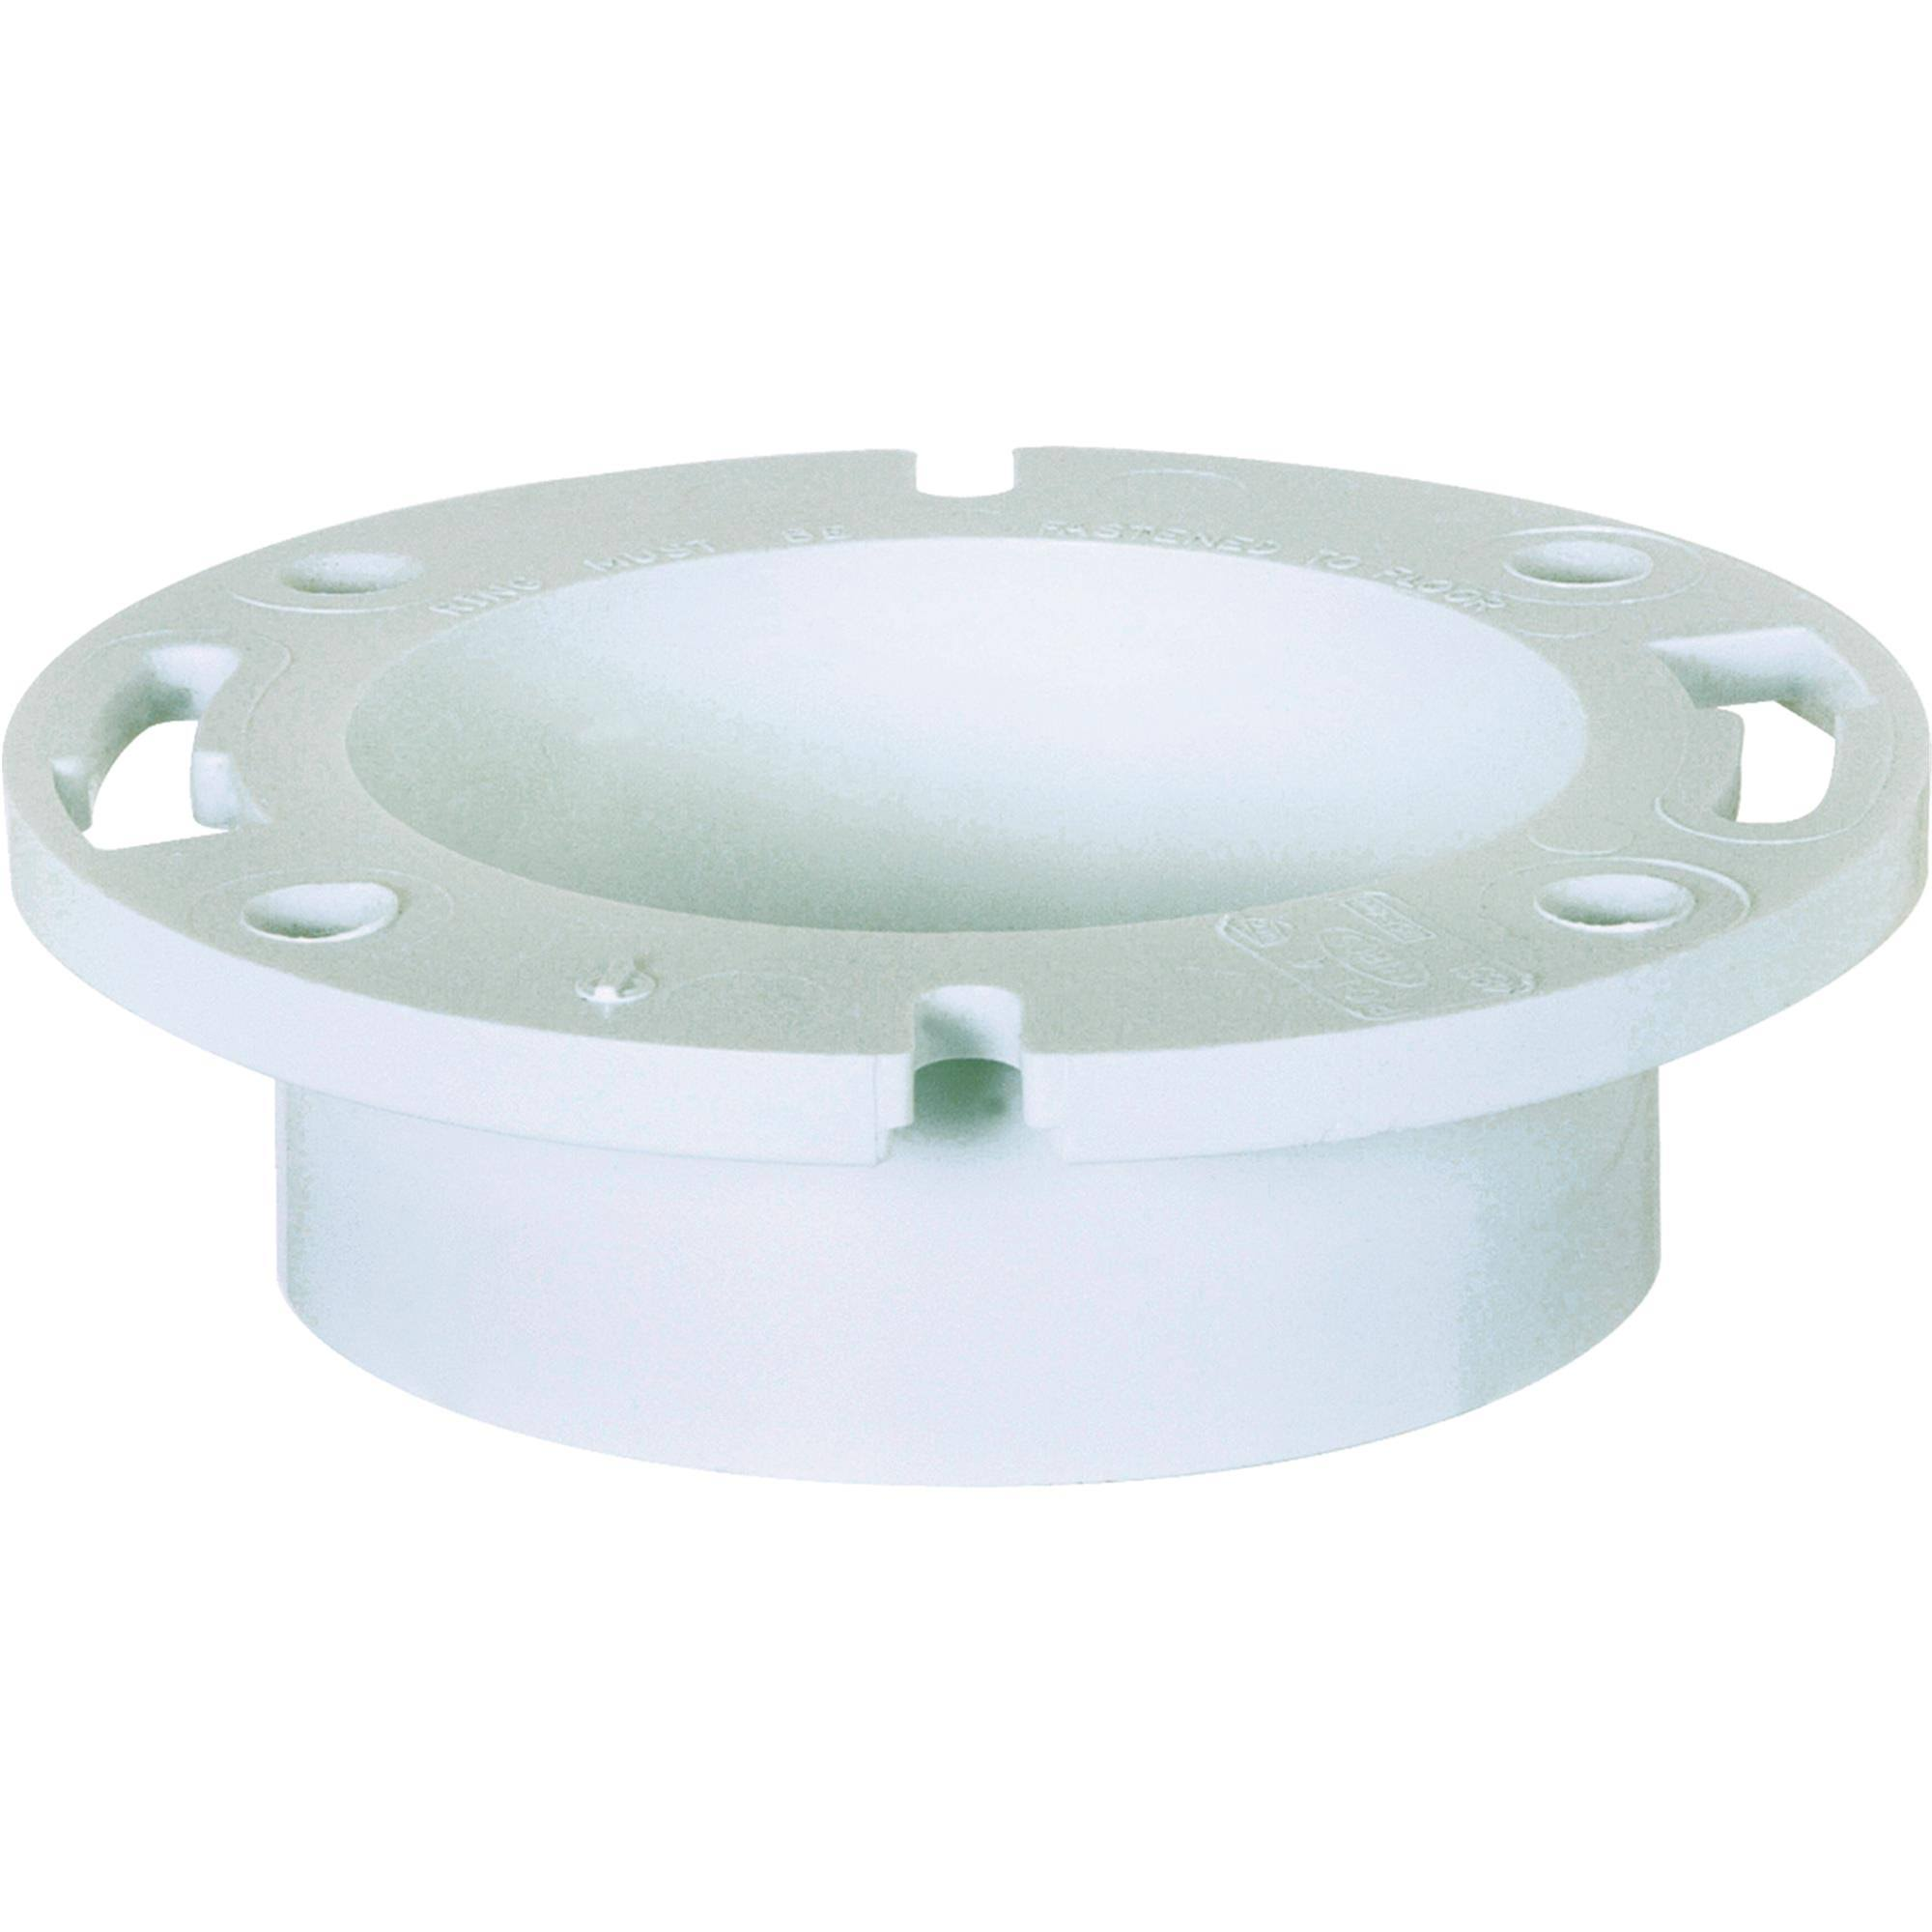 Sioux Chief Open Closet Flange - Pvc